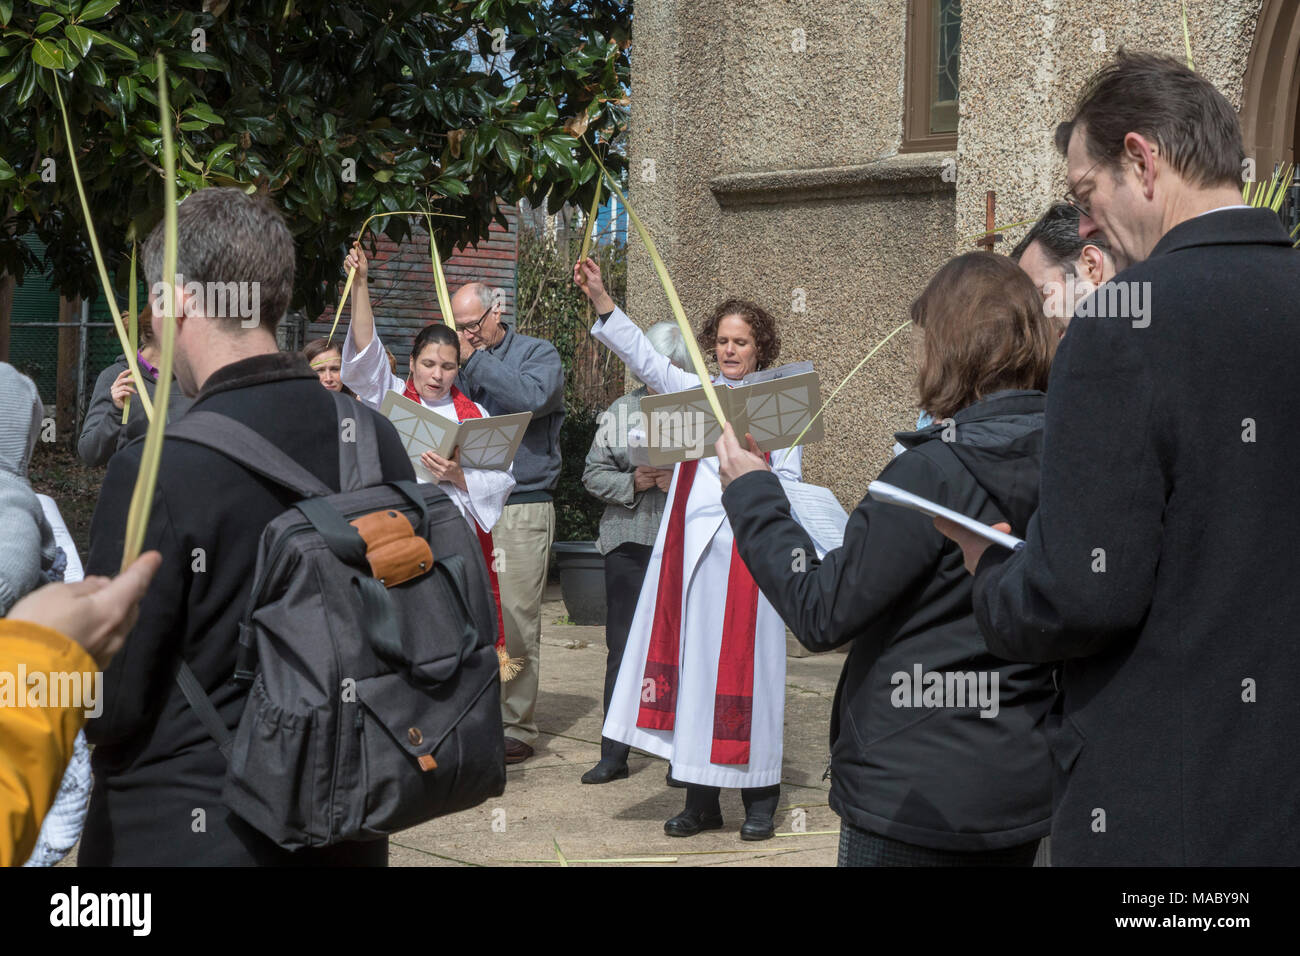 Washington, DC - Members of Christ Church celebrated Palm Sunday with a procession in their Capitol Hill neighborhood before worship at the church. Ch - Stock Image